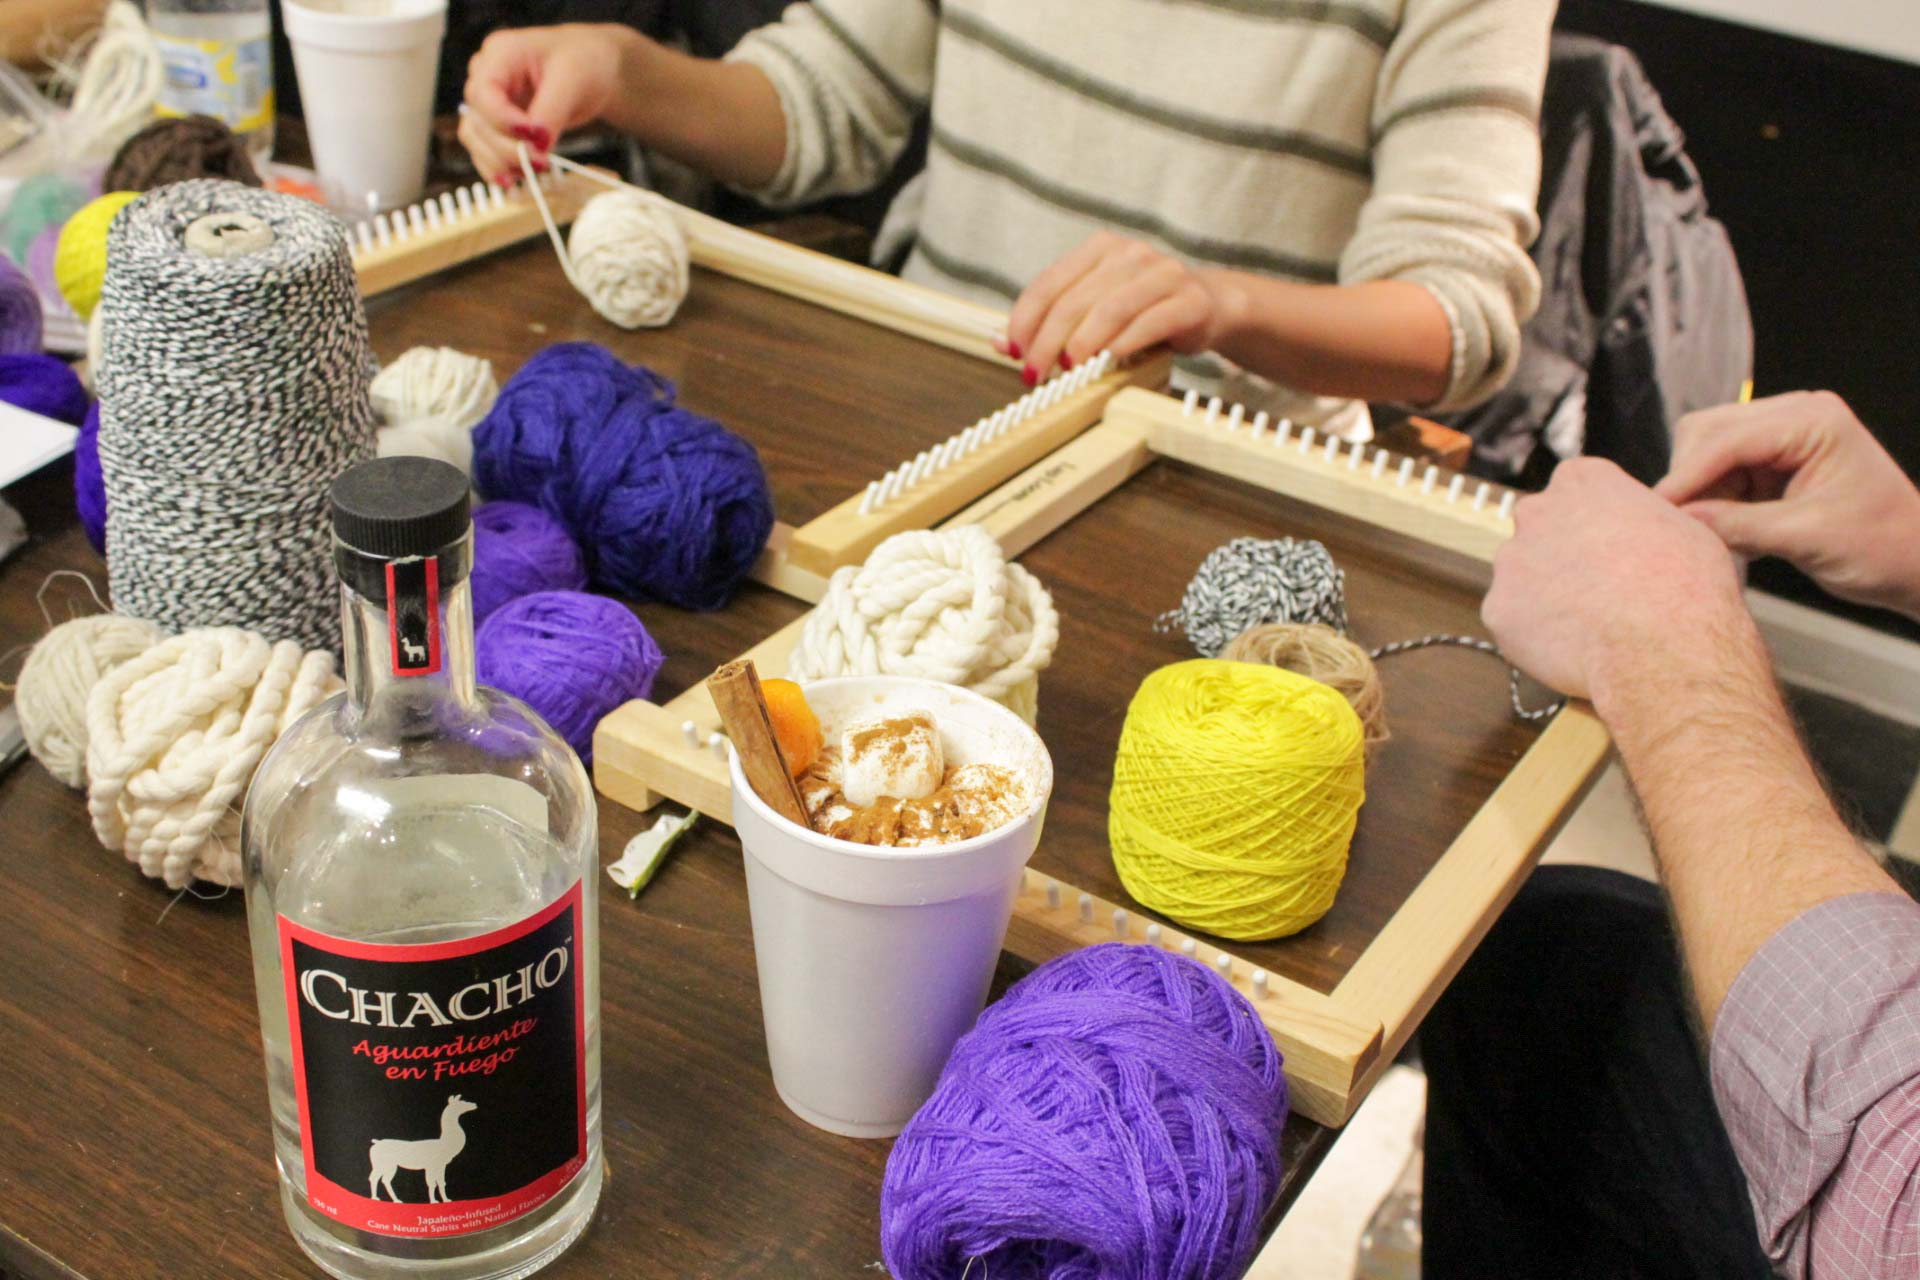 2-2016-mexican-hot-chocolate-tapestry-weaving (22 of 59).jpg